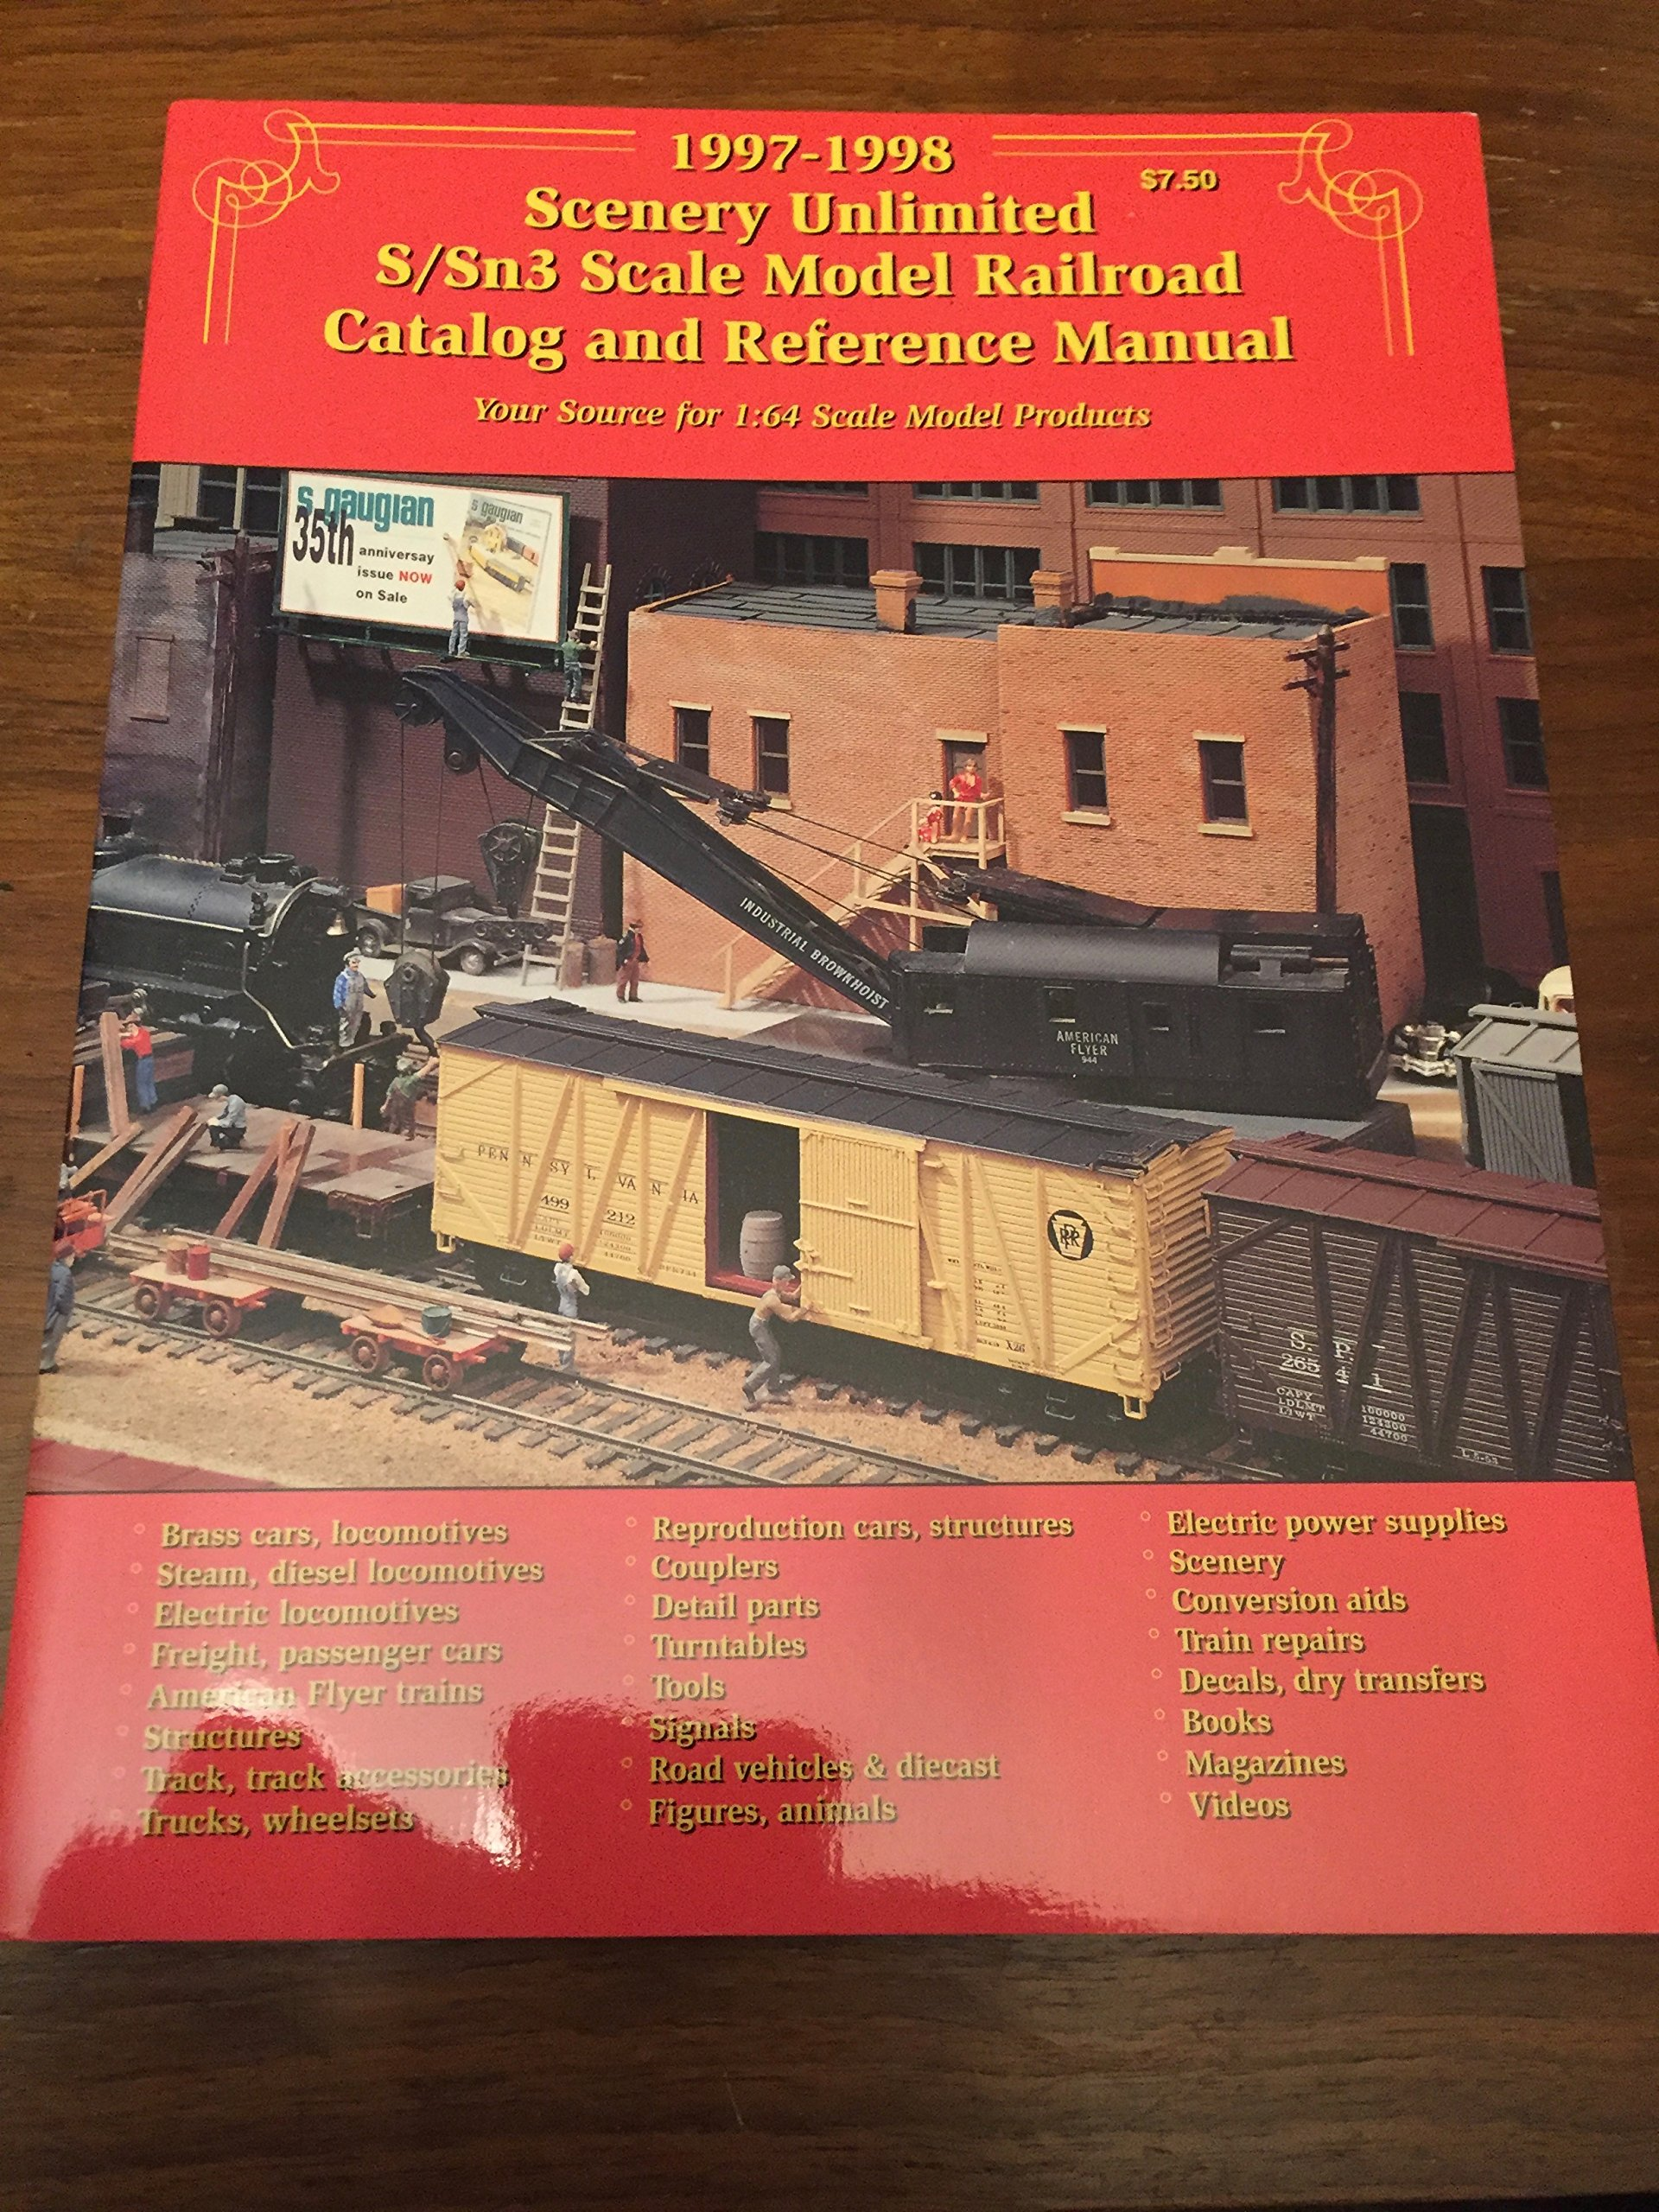 1997-1998 Scenery Unlimited S/Sn3 Scale Model Railroad Catalog and